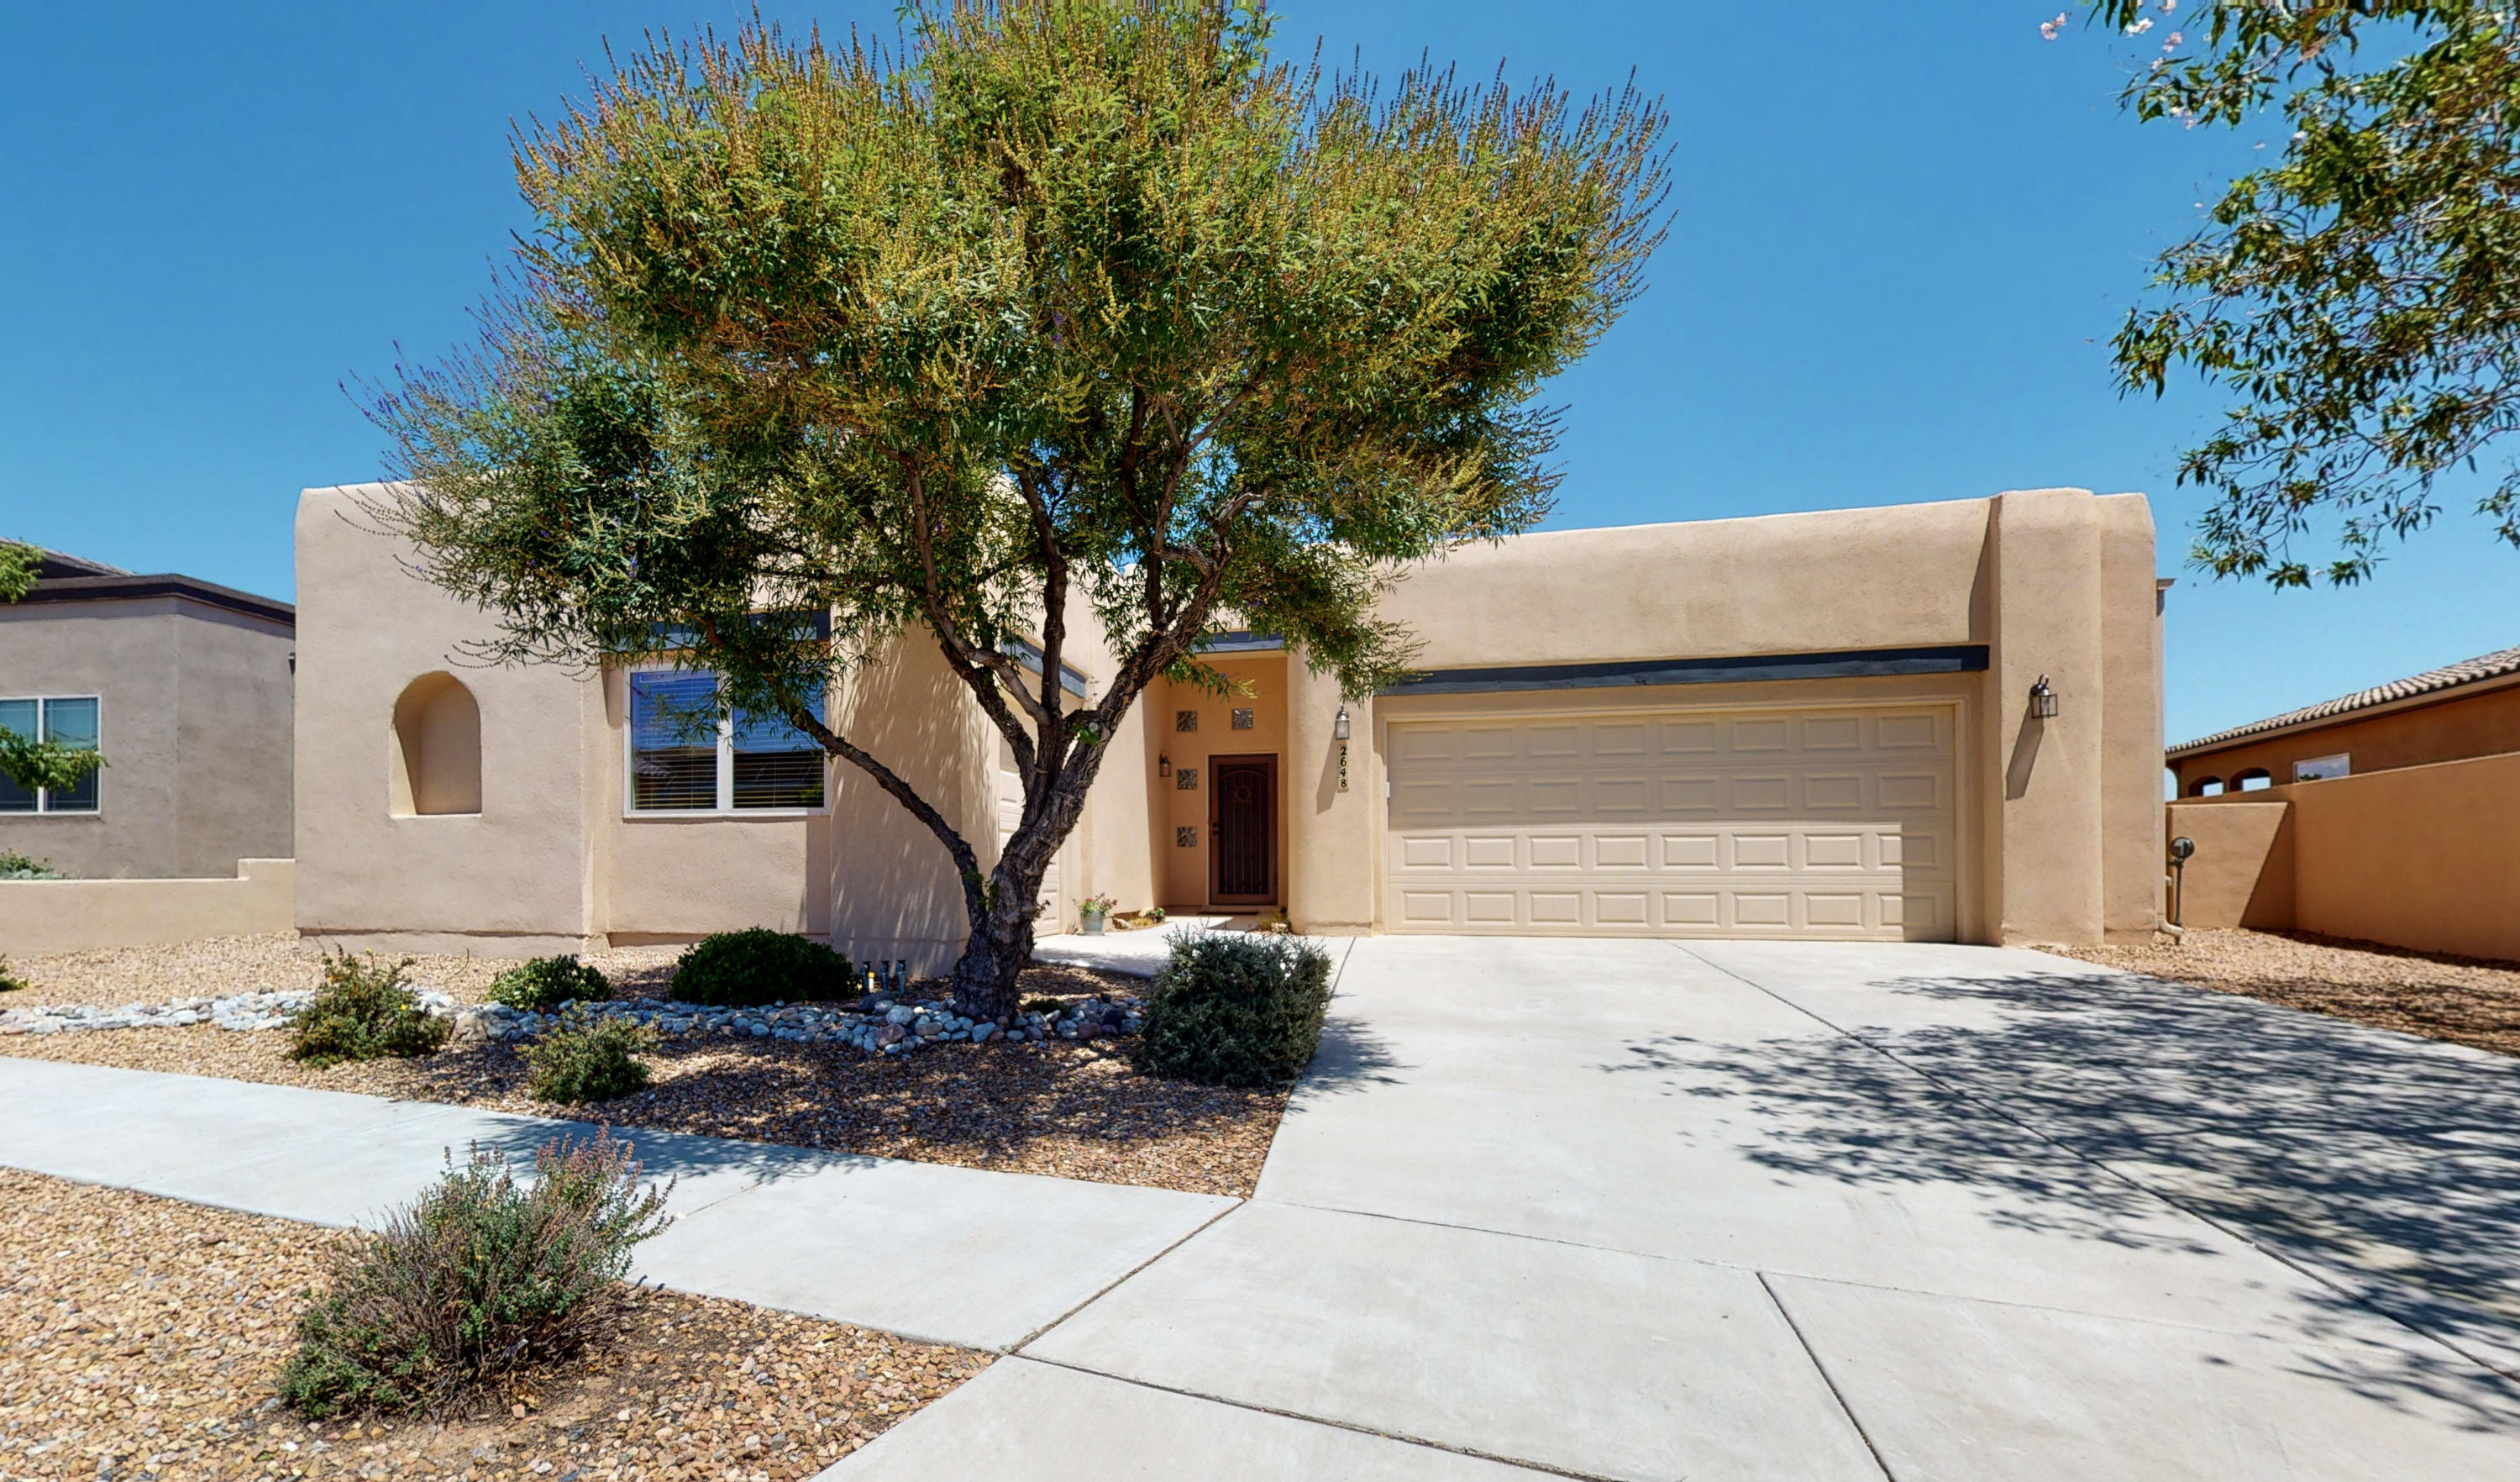 Single level living at its best.  You enter into a wide welcoming foyer.  A gorgeous huge living/dining room combo is perfect for entertaining; corner fireplace and lots of light.  Beautiful granite in the large kitchen - big island plus a breakfast bar.   The master bedroom and other bedrooms are separated for privacy. Master has sliding glass doors to backyard, gorgeous master bath and a huge master closet.   All the rooms are large and the skylights and abundant windows make this a very bright and airy floor plan.  Huge laundry room.  Plenty of storage.  There is a 2 car garage PLUS a one car finished garage that is set up as a workshop.  The backyard is the perfect place to hangout for a cookout.  Two ac/heat combo units.